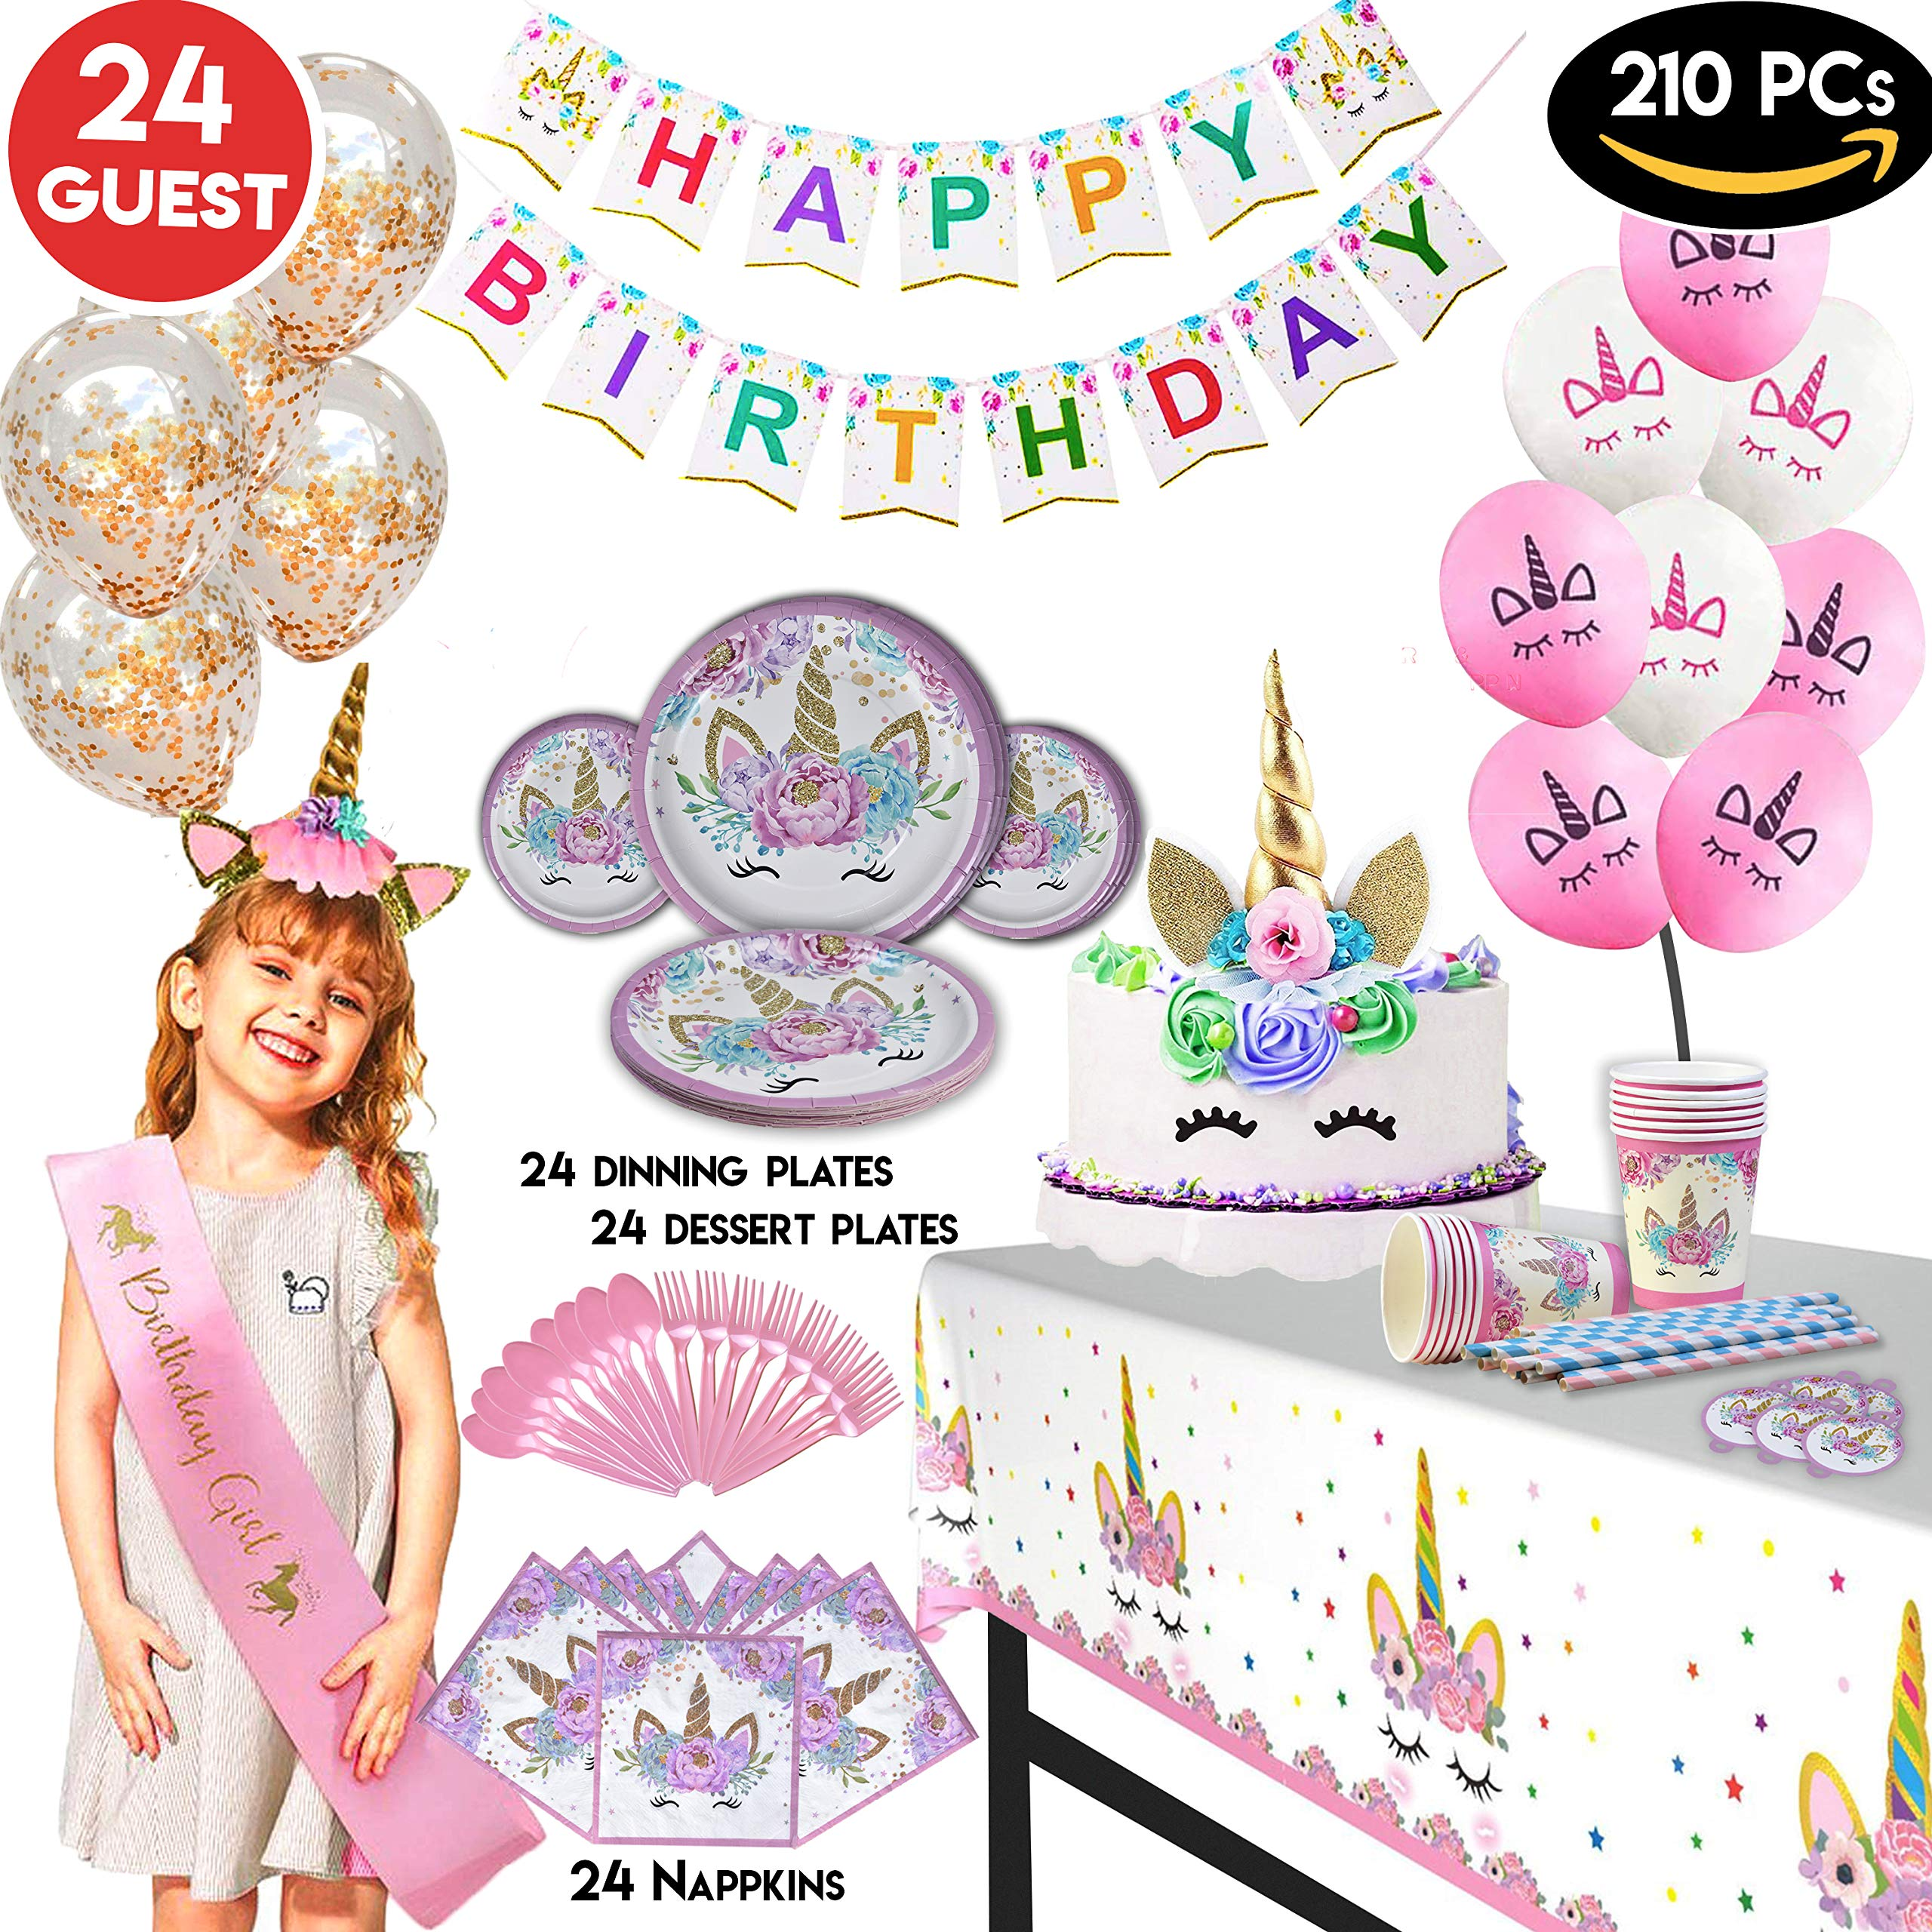 Value Smash Unicorn Party Supplies 24 guests for girls with Birthday Banner, Unicorn Cake Topper, Headband & Sash, Dinning & Dessert plates, Tablecloth, Cups, Forks & Spoons Set, 15 balloons by Value Smash